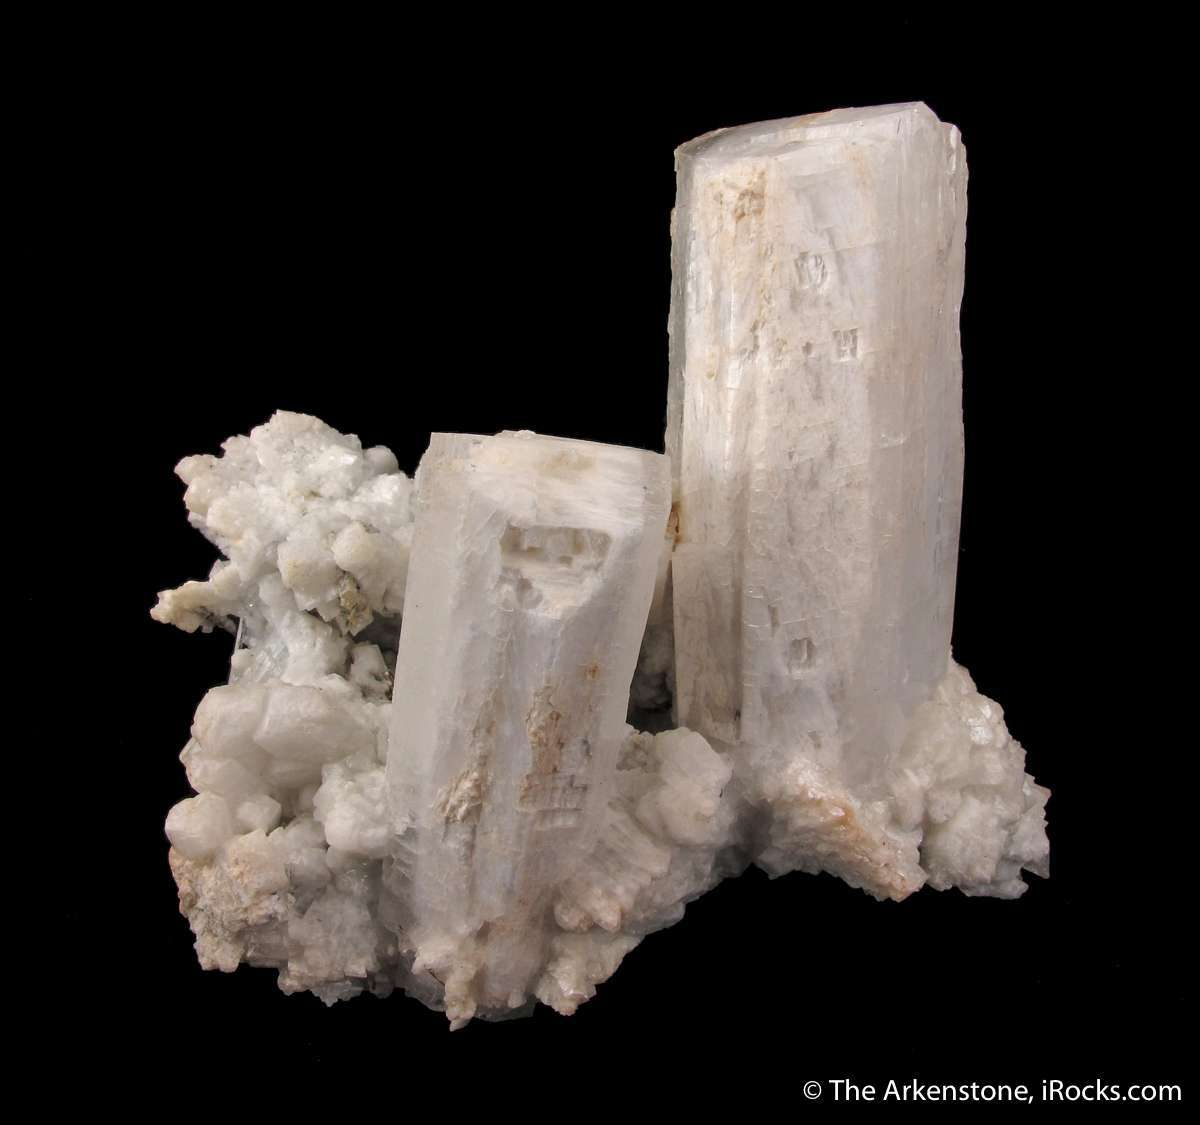 A attractive pair terminated pristine complete Microcline crystals set